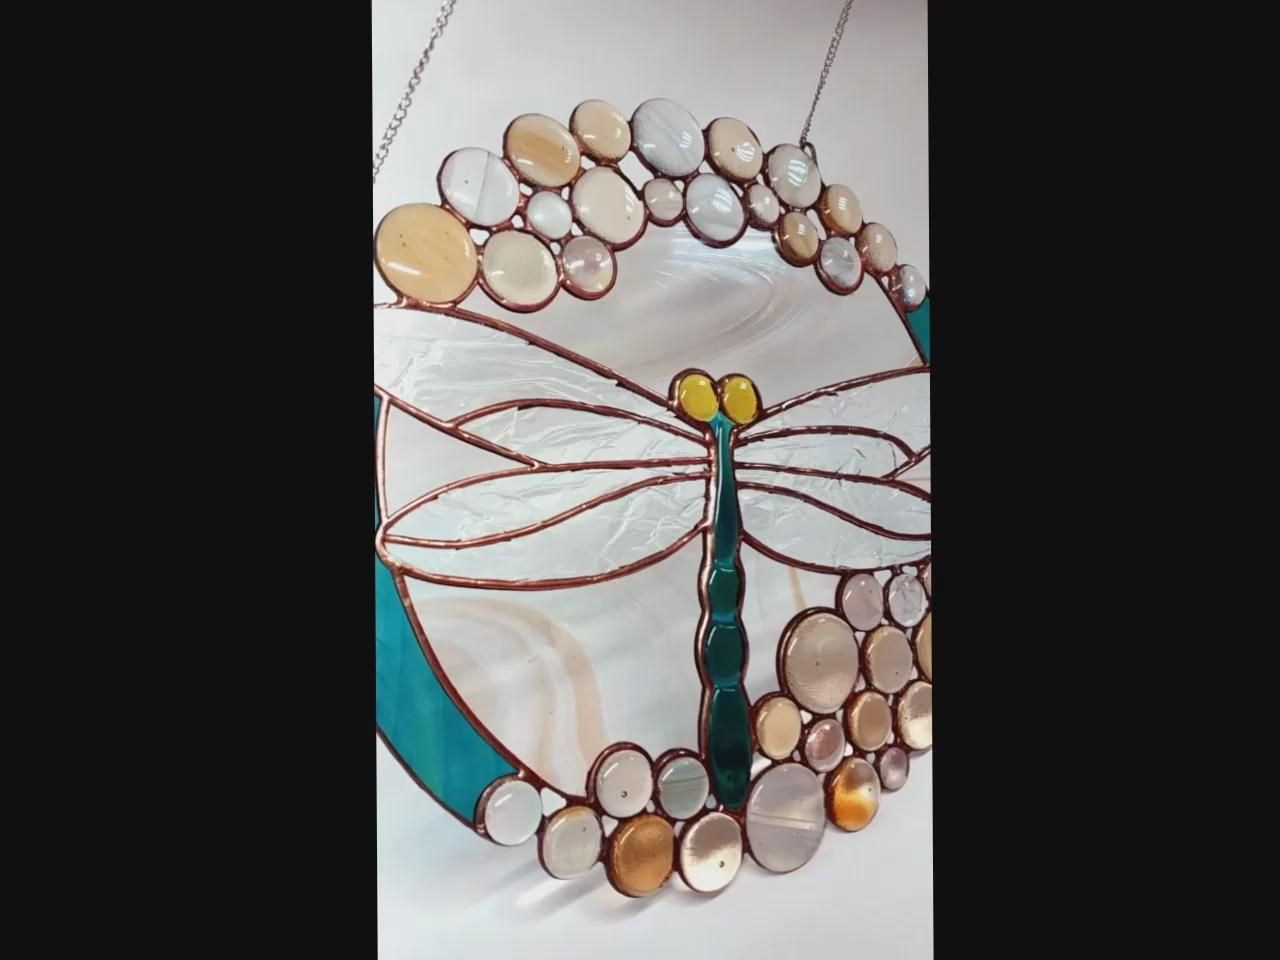 Suncatcher Dragonfly Window Hangings Mothers Day Gift Garden Stained Glass Dragonfly Cabochons